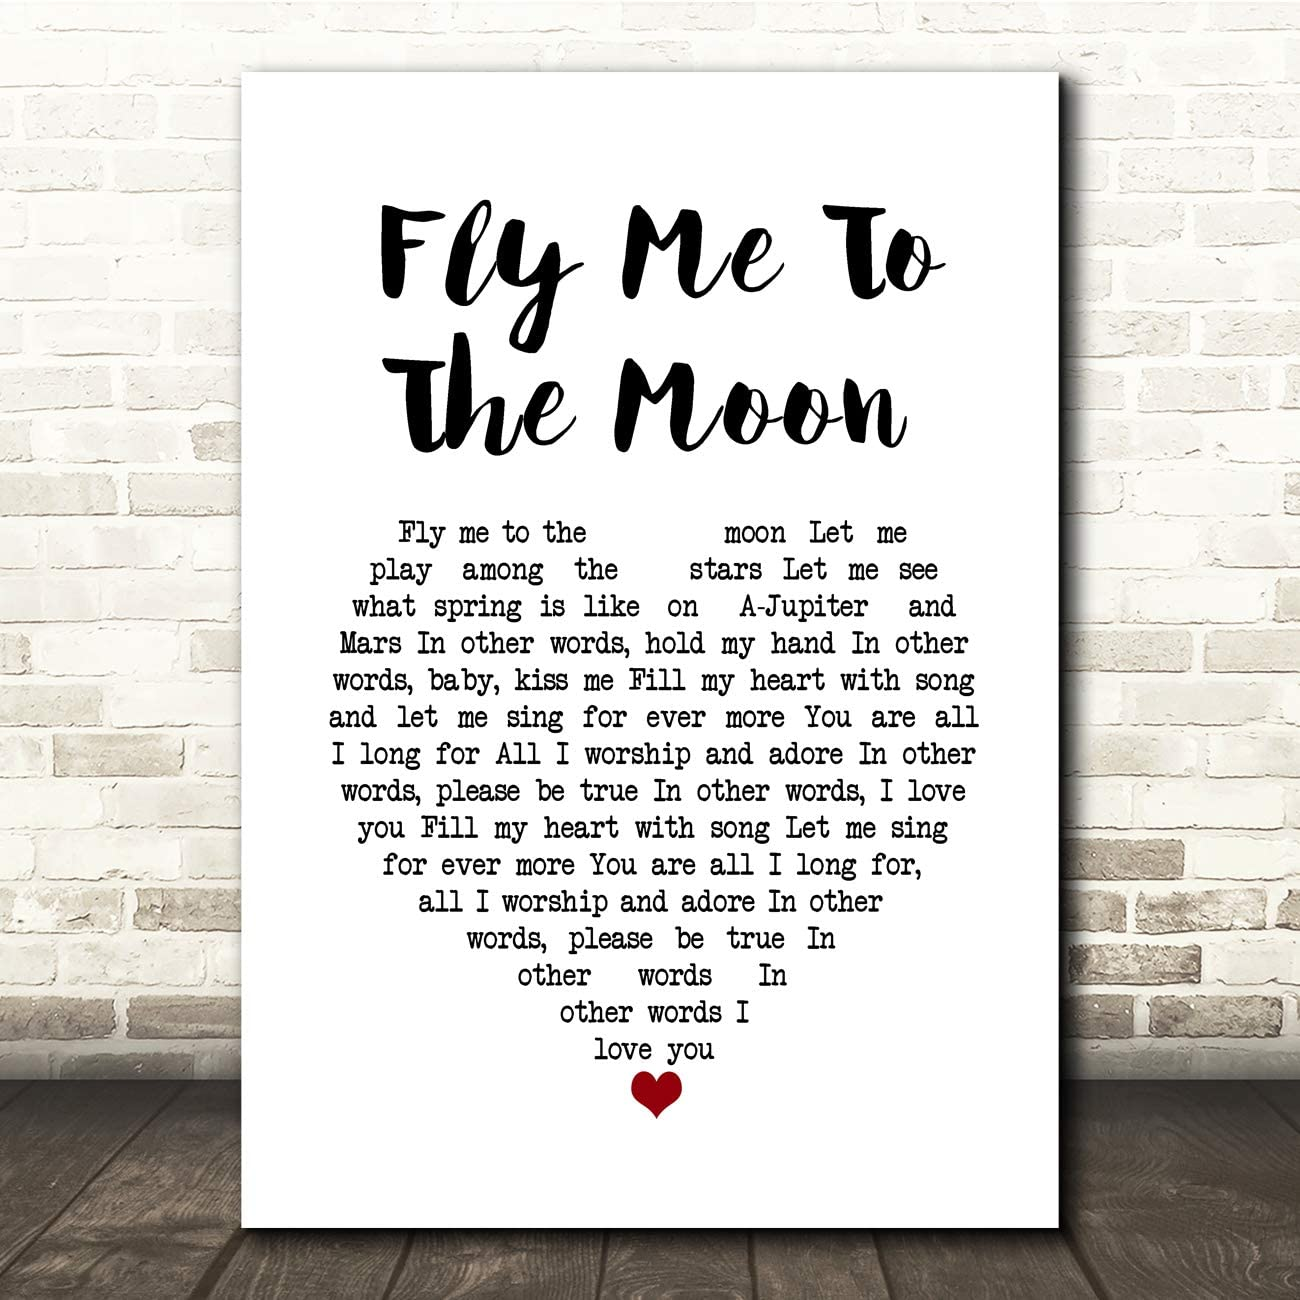 To fly the 歌詞 me moon